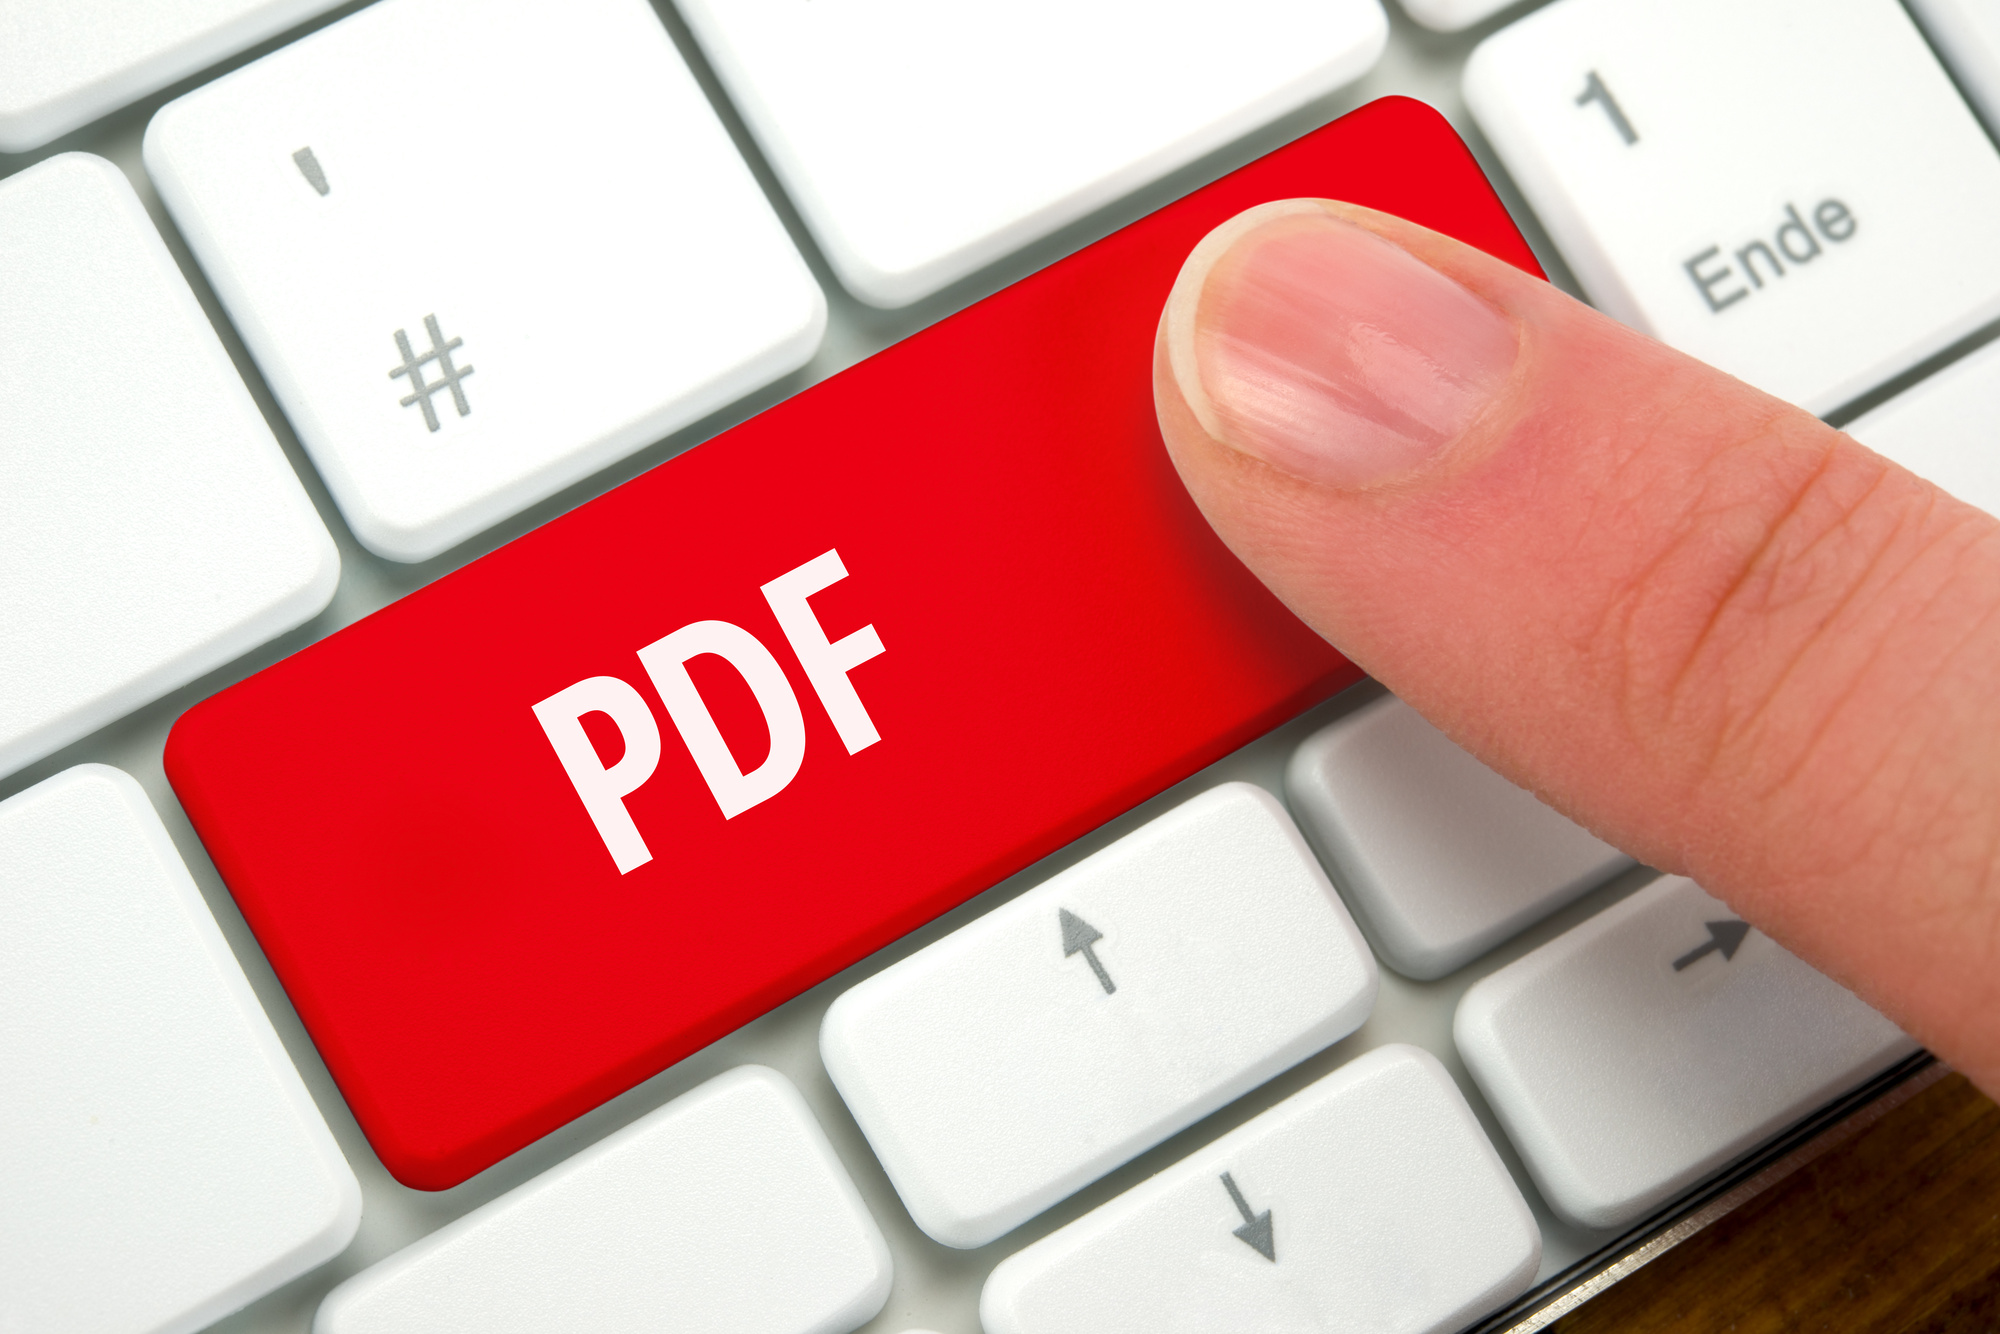 How to Save Something as a PDF: 8 Useful PDF Conversion Hacks to Know in 2018